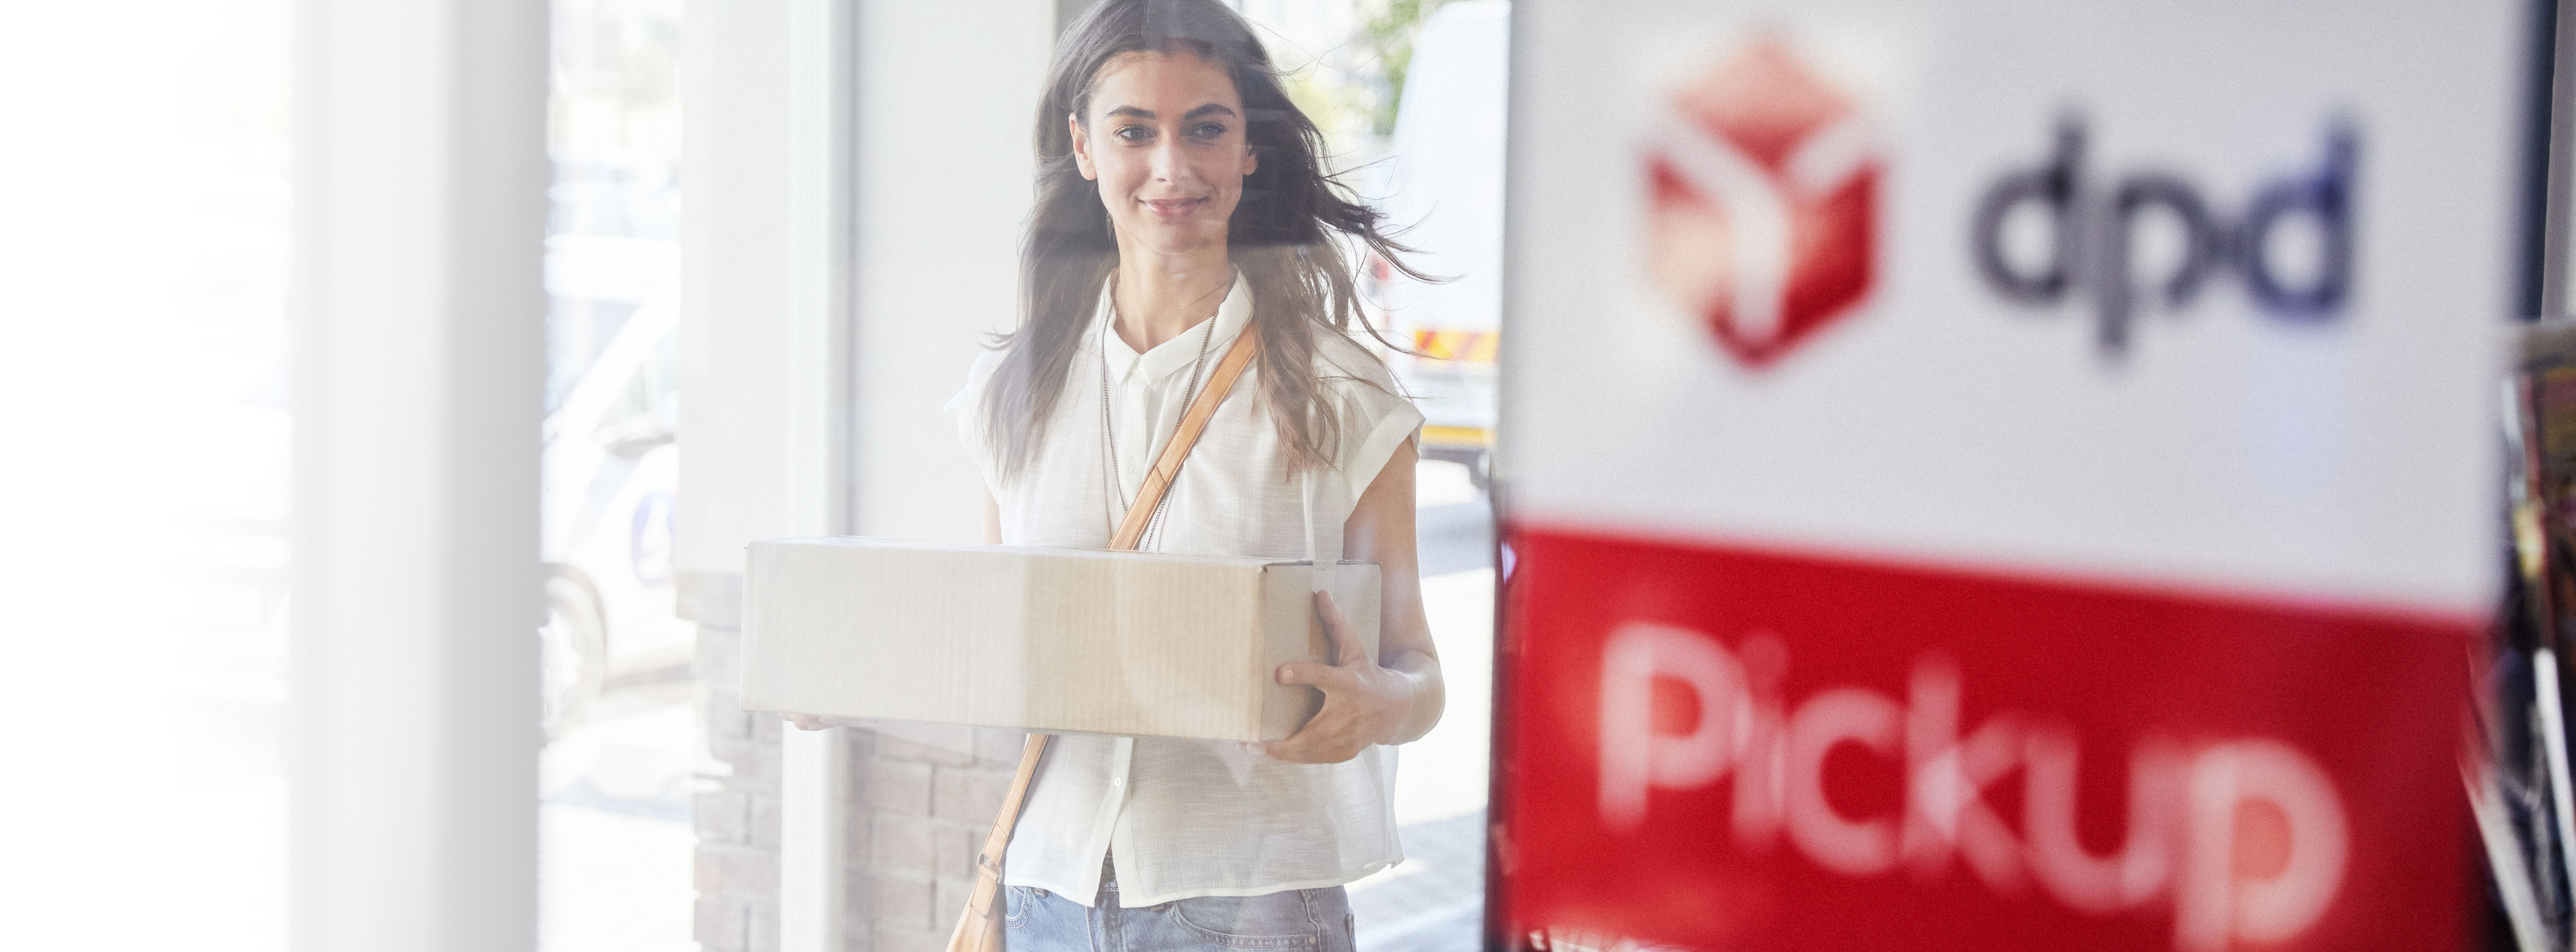 Full resolution (sRGB)-DPD Pickup shop woman shipping parcel 8247